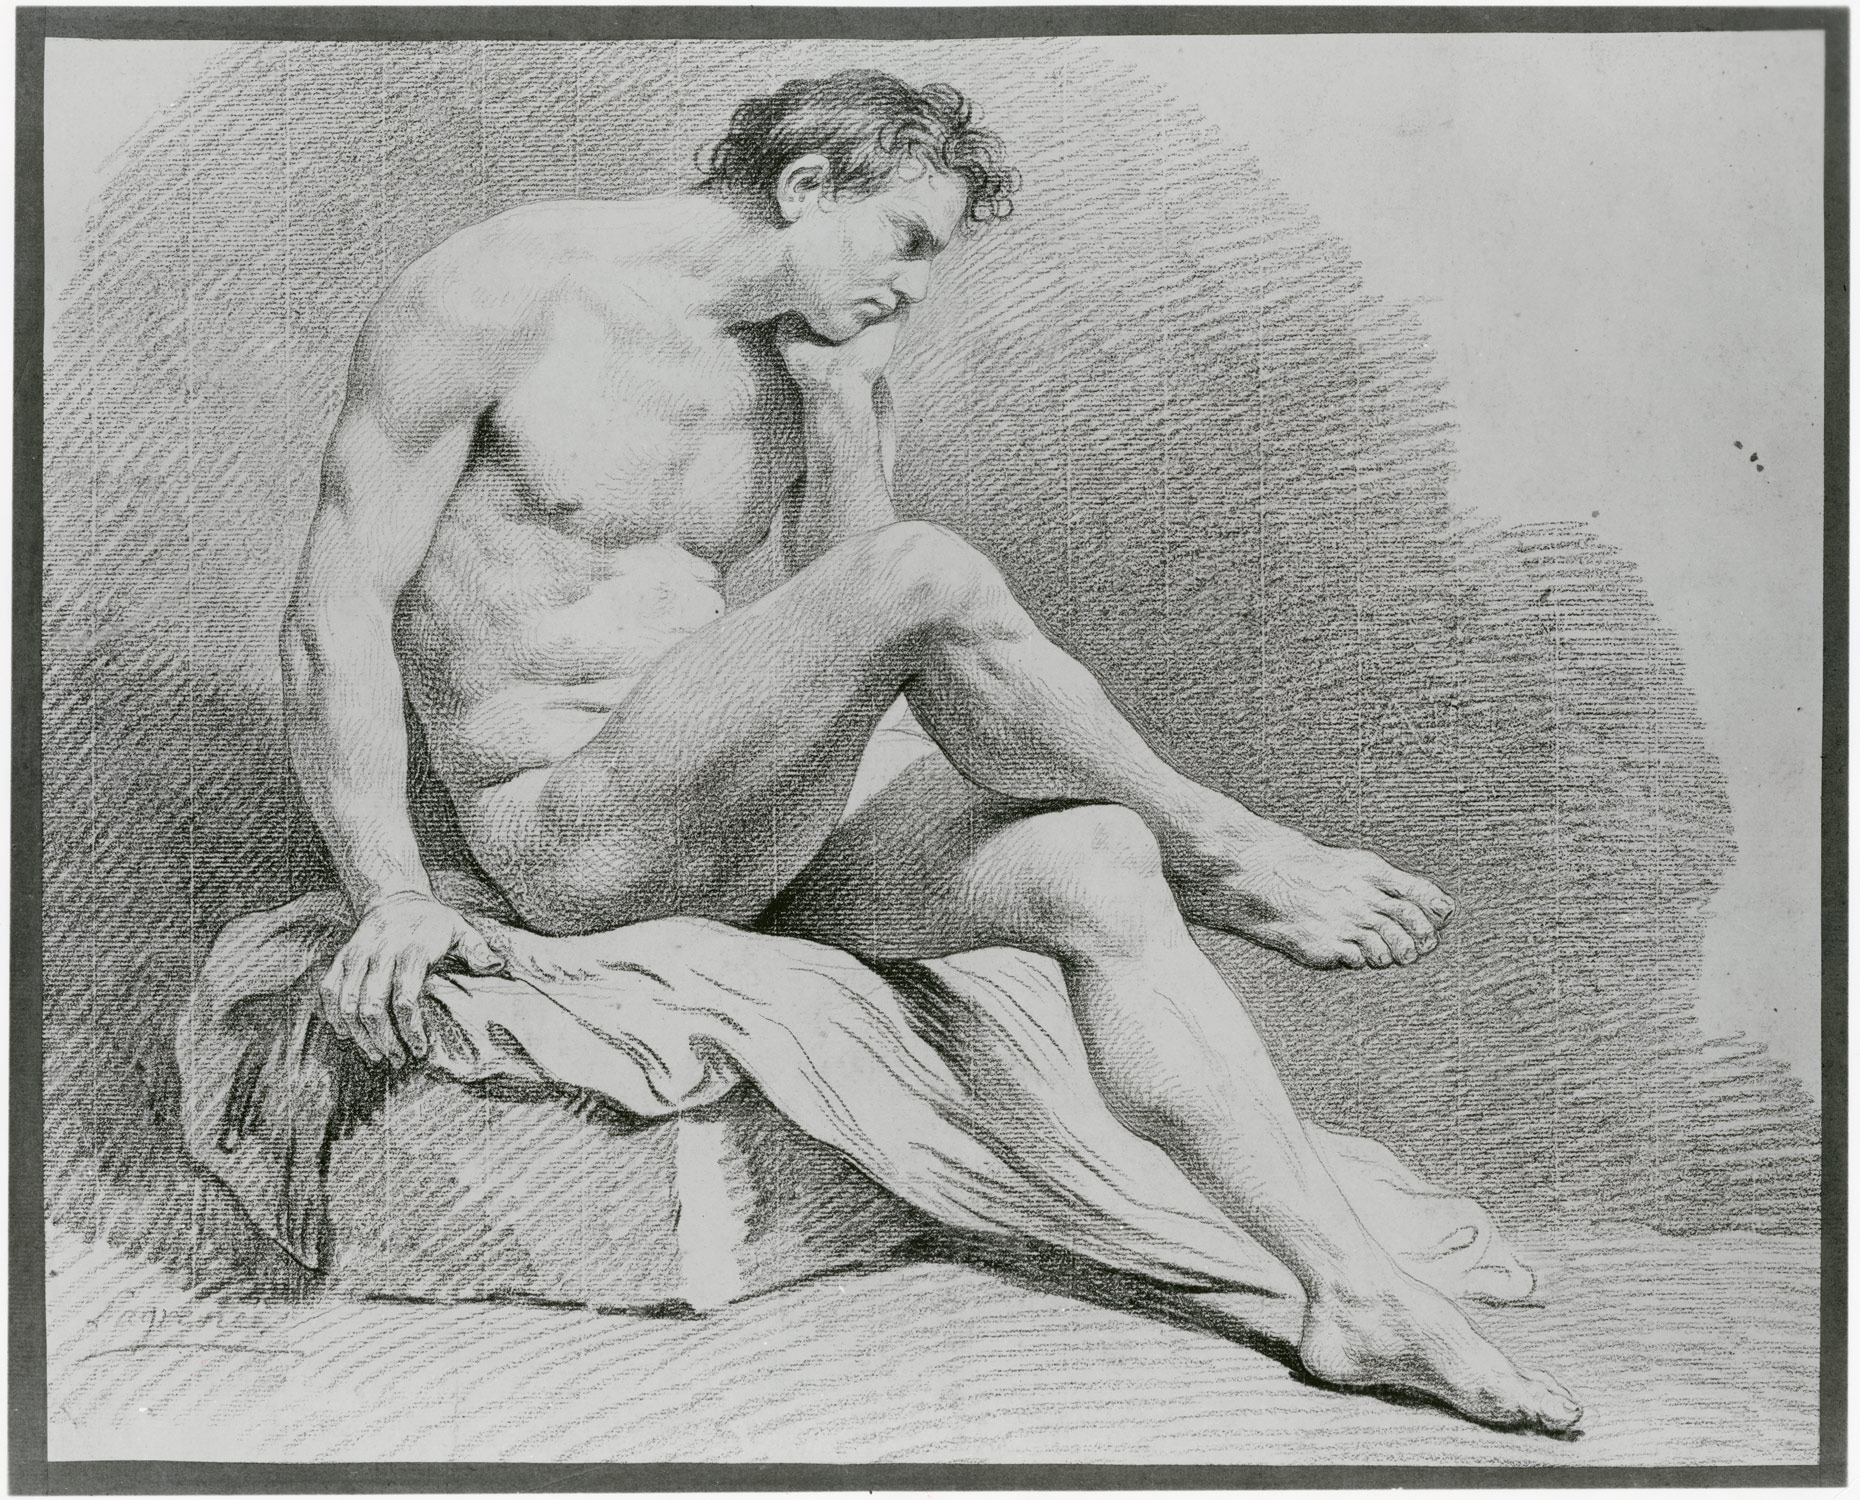 Male french men nude